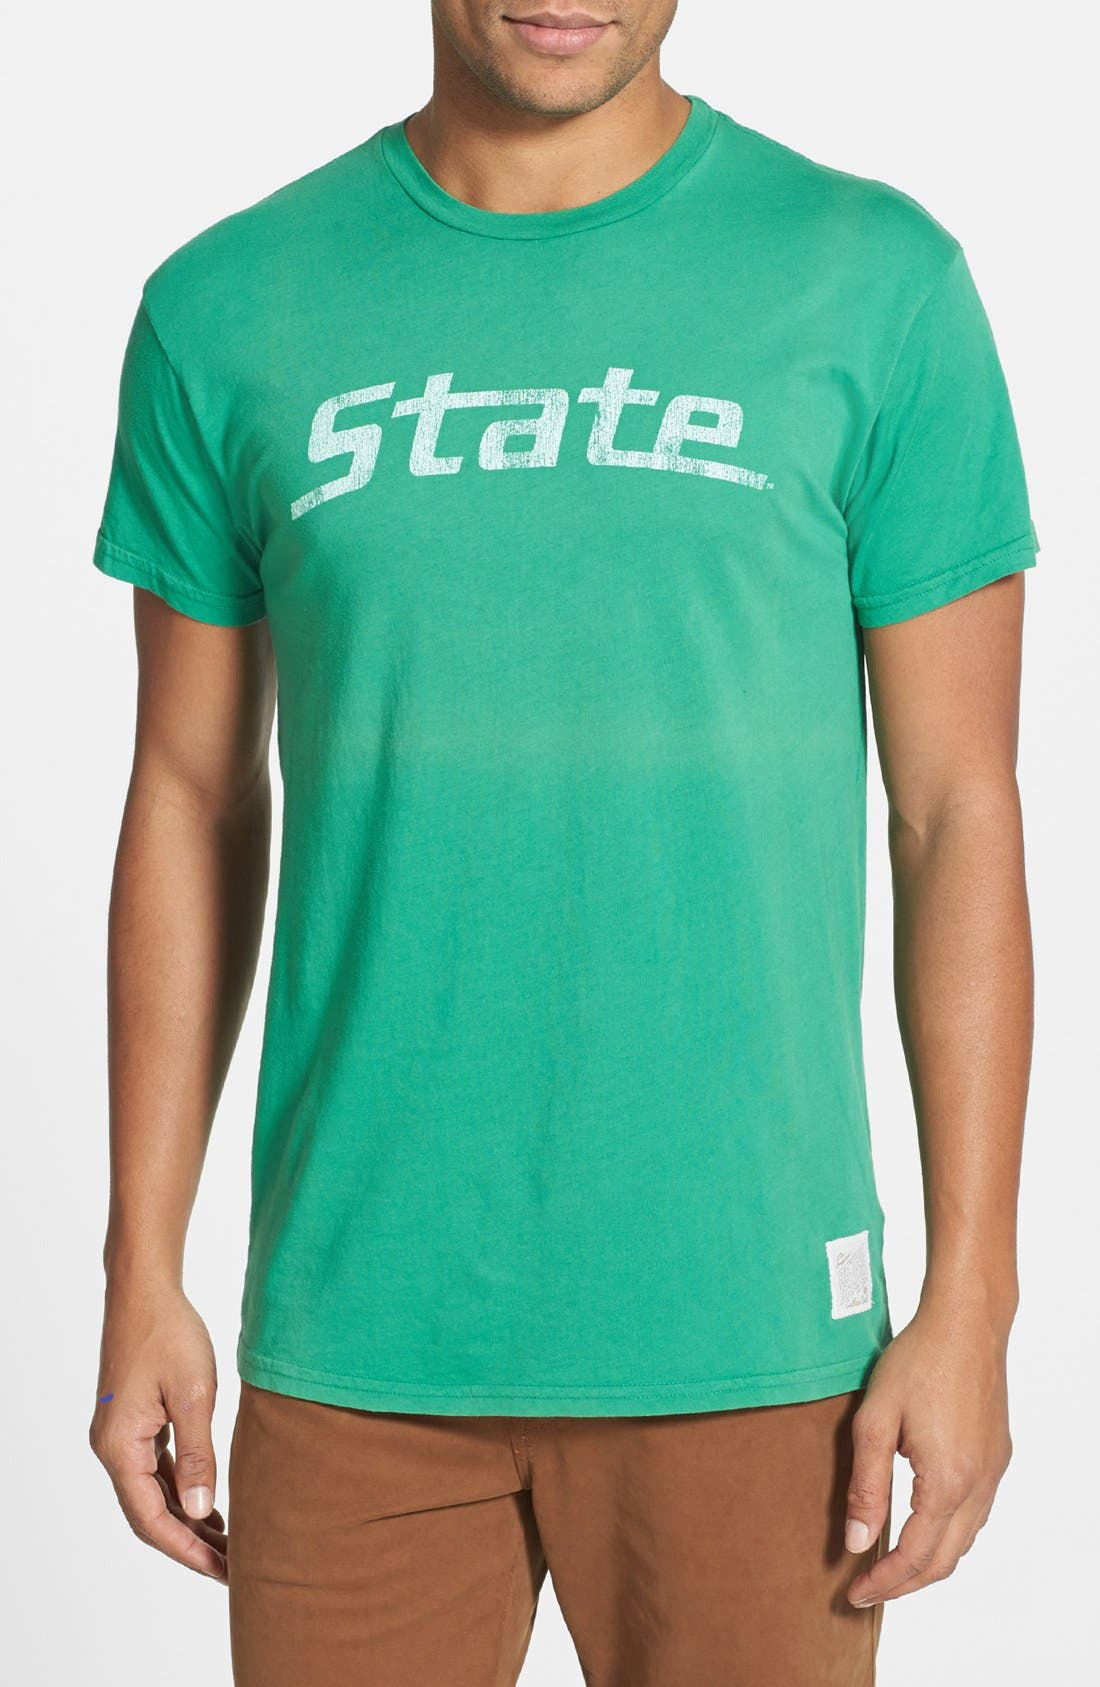 Alternate Image 1 Selected - Retro Brand 'Michigan State' Graphic T-Shirt